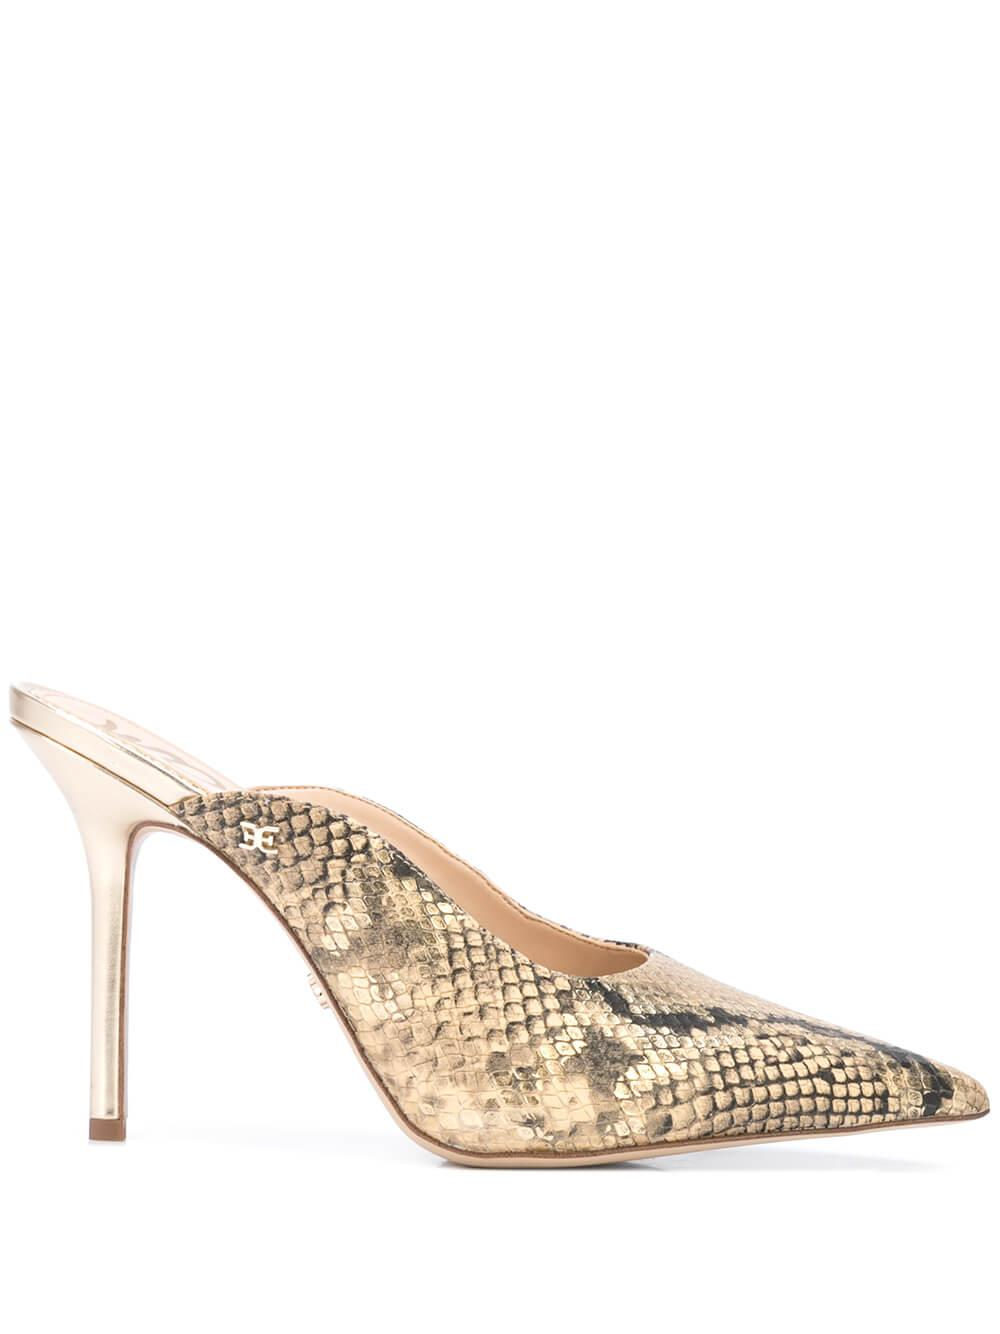 Bahamas Snake Pointed Toe High Heel Mule